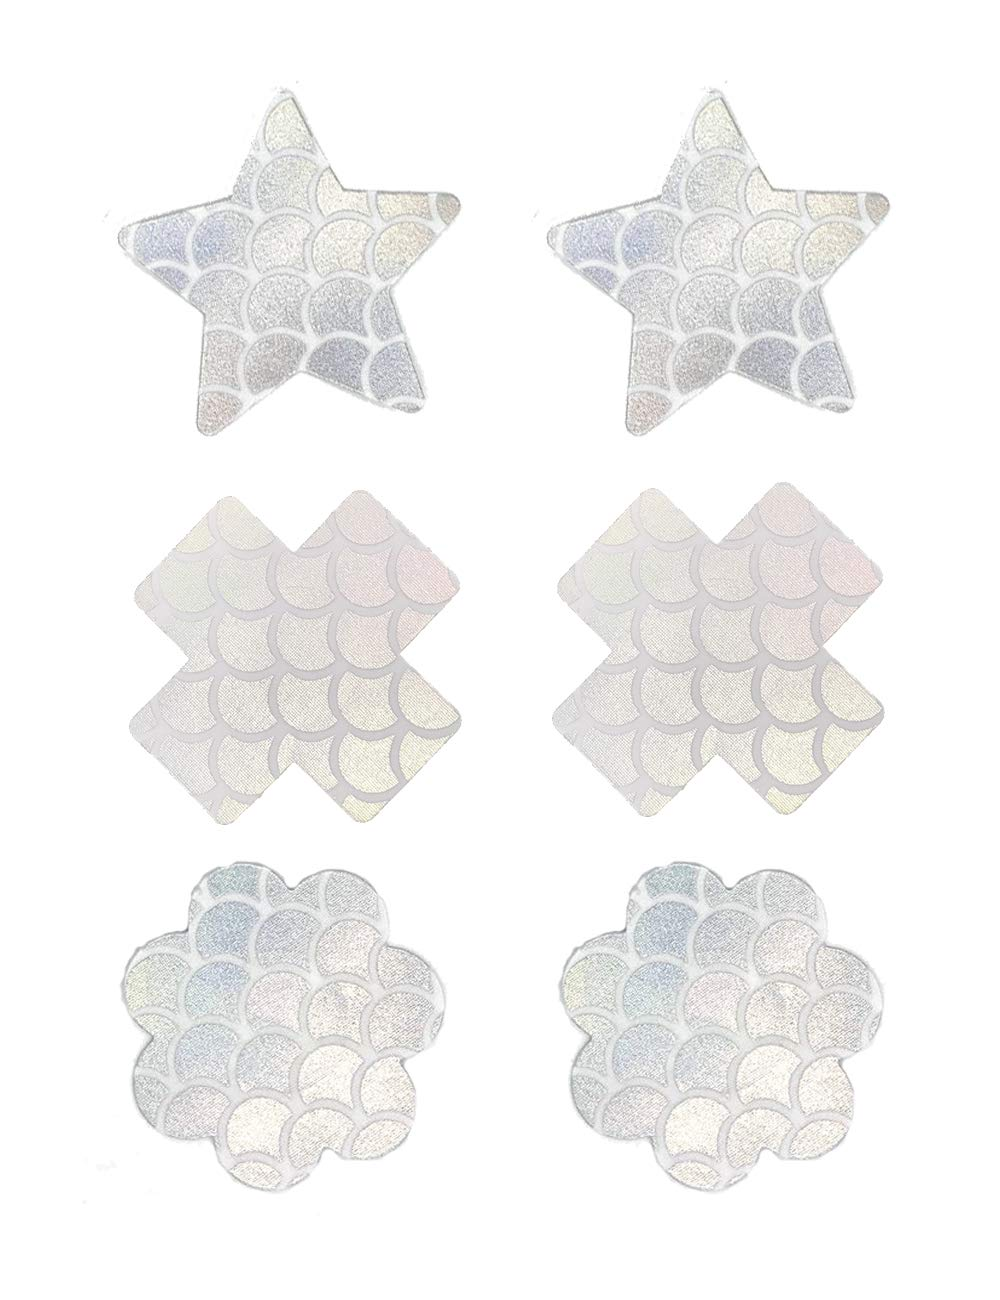 SATINIOR 6 Pairs Glitter Nipple Breast Covers Crossed Nipple Stickers Disposable Pasties